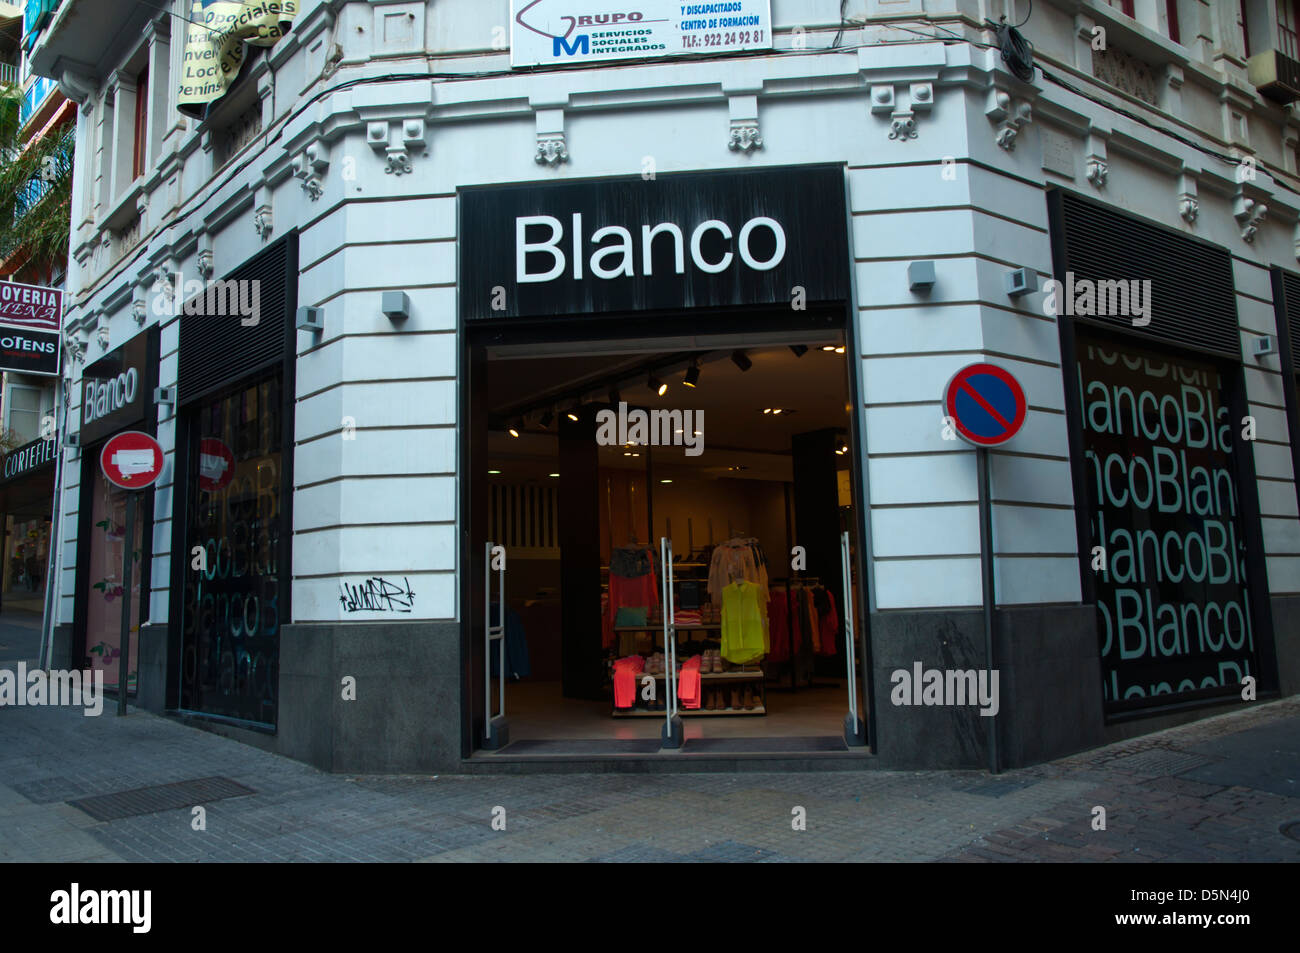 Chain clothing stores